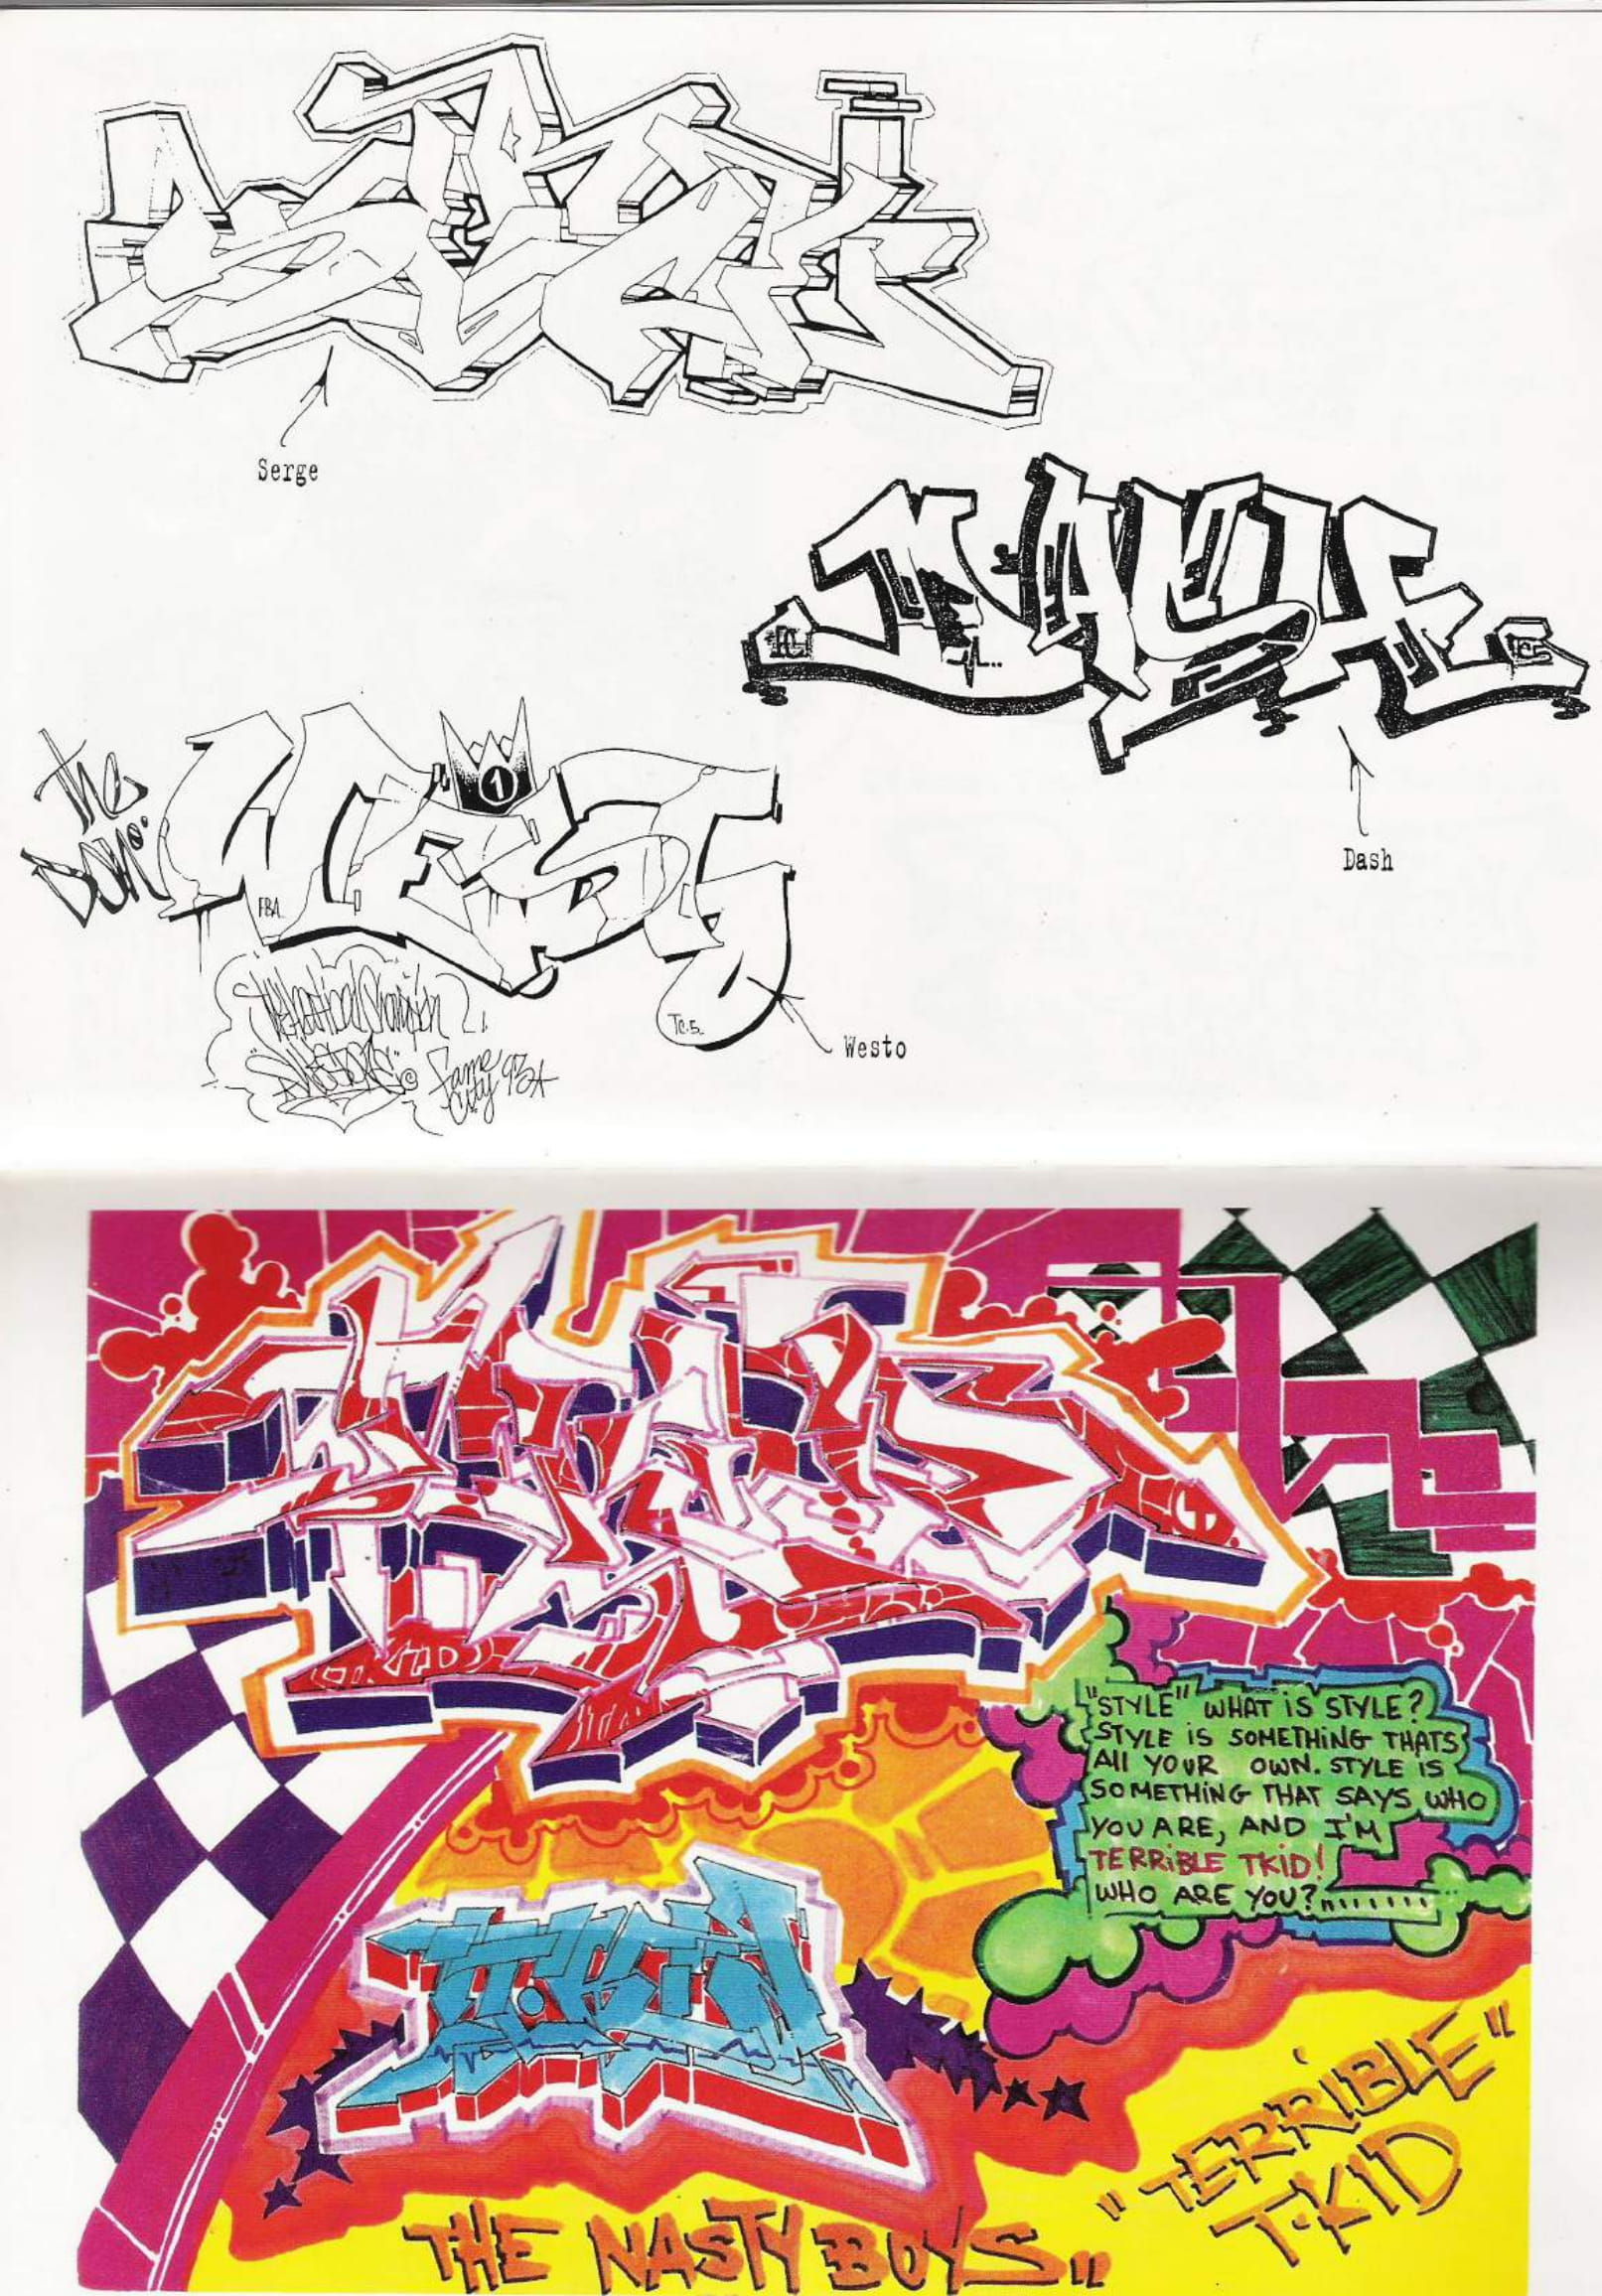 Backjumps.-.Sketchbook-AEROHOLICS-compressed-06.jpg